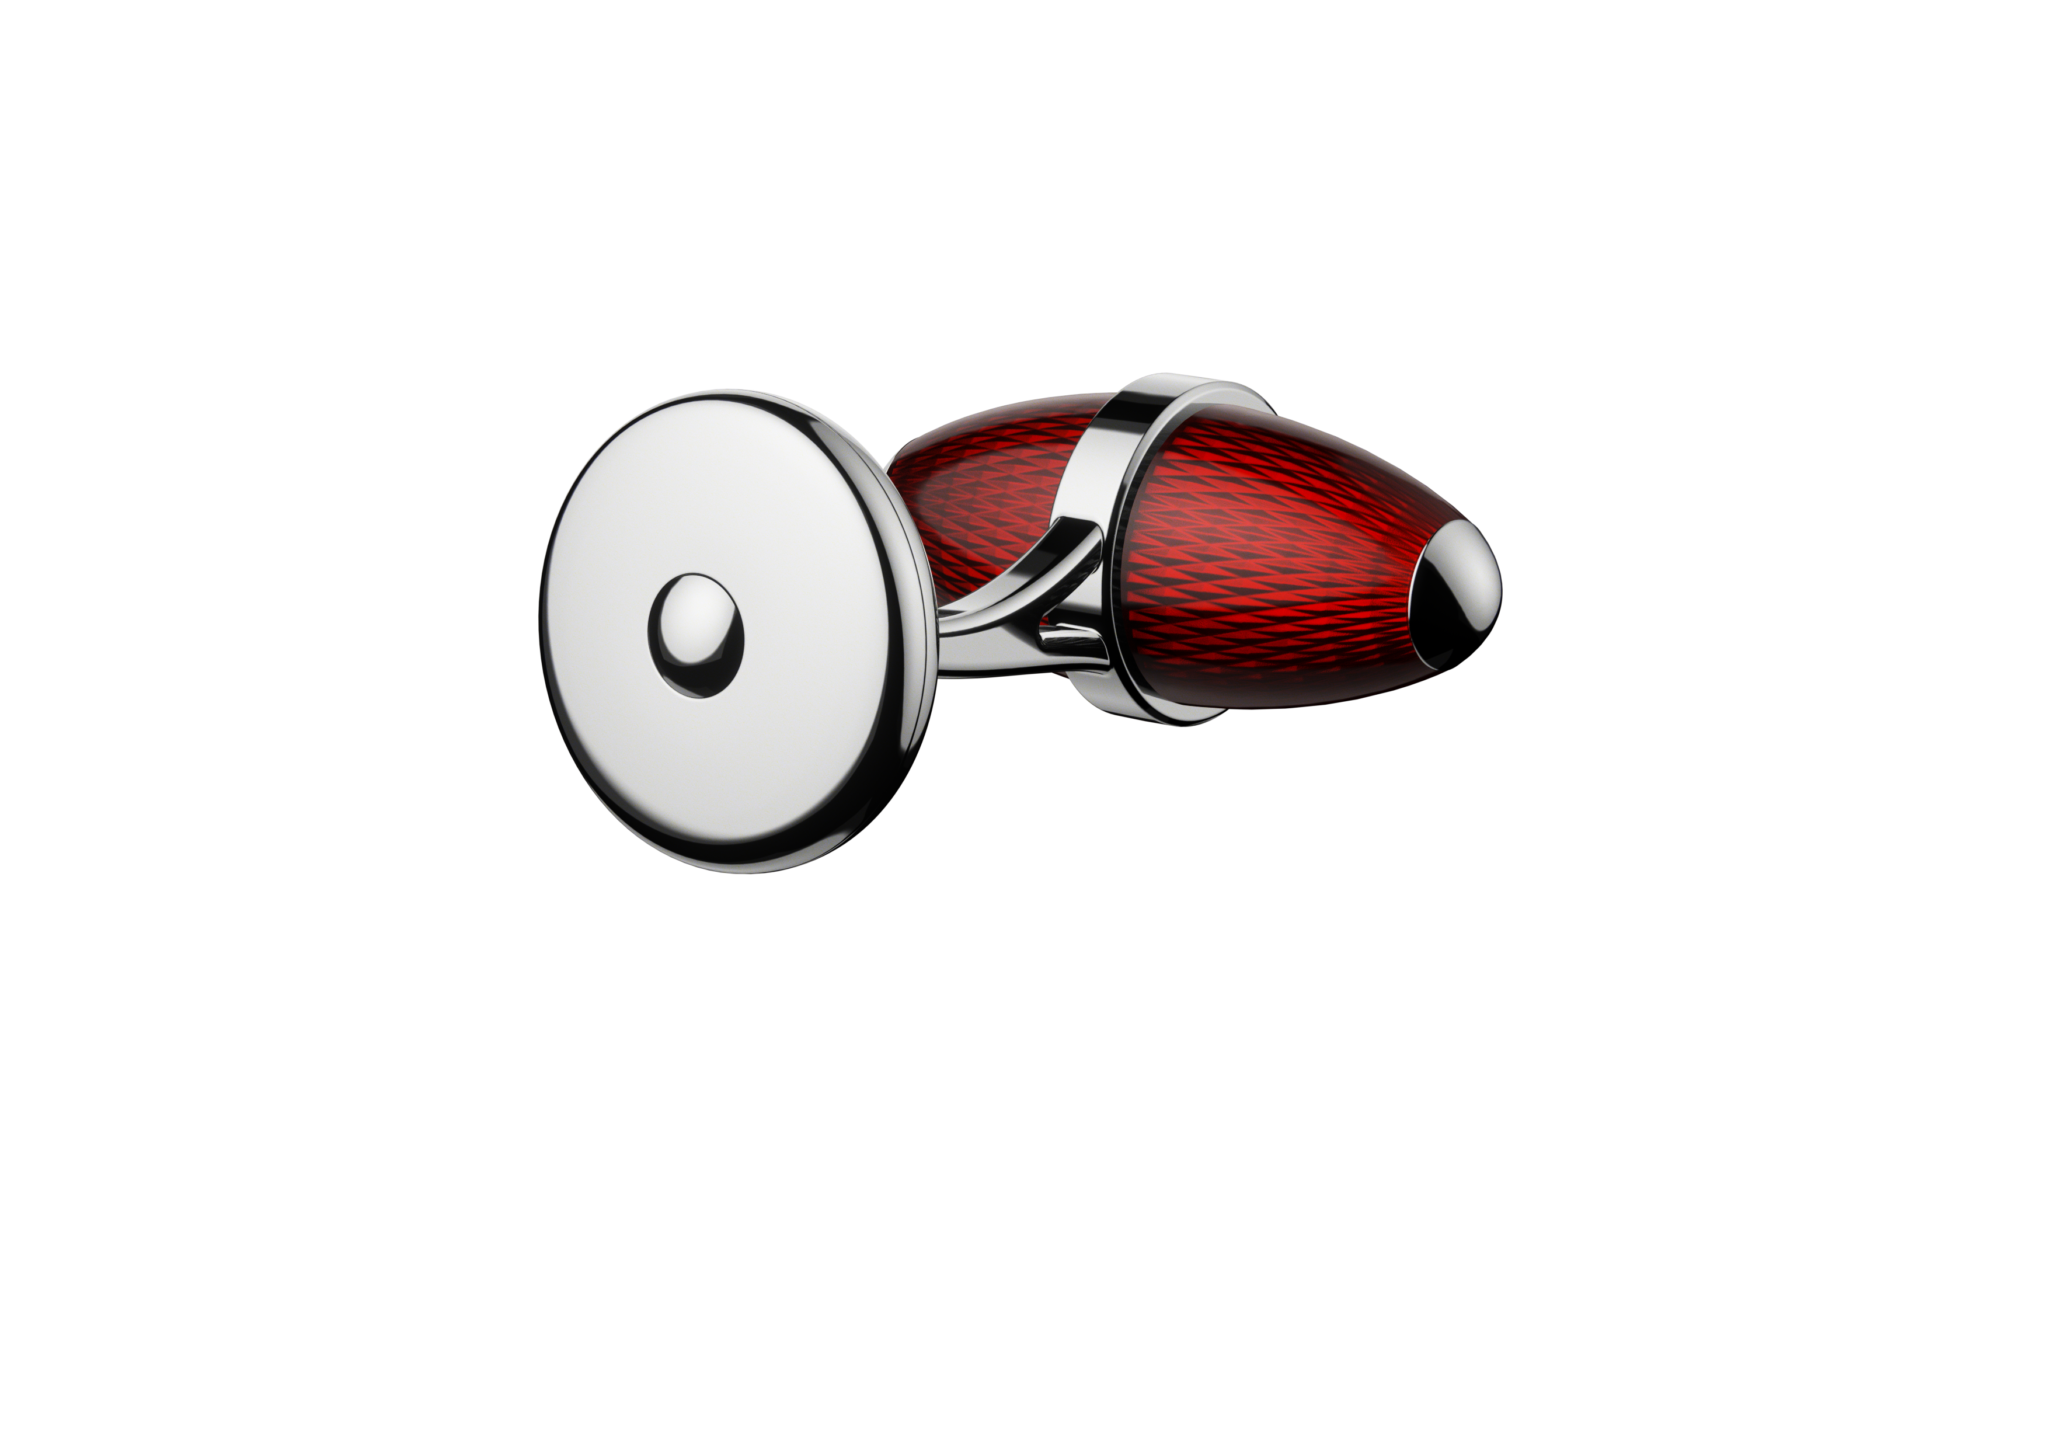 kerbedanz_Cufflinks_Ogive_ROUGE_DOS_Stainless-steel